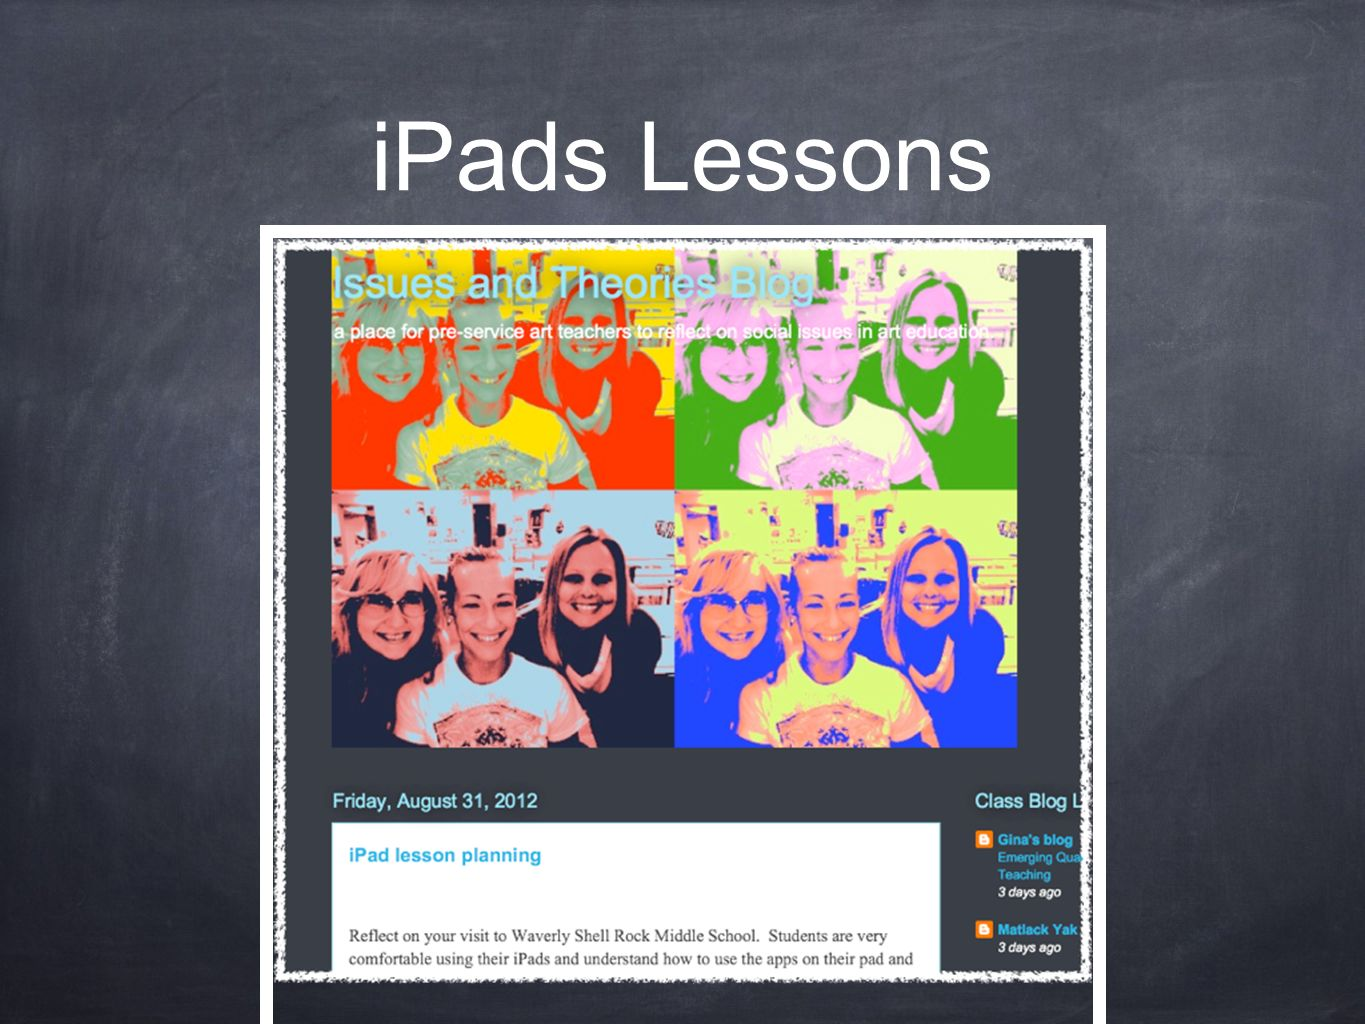 iPads Lessons